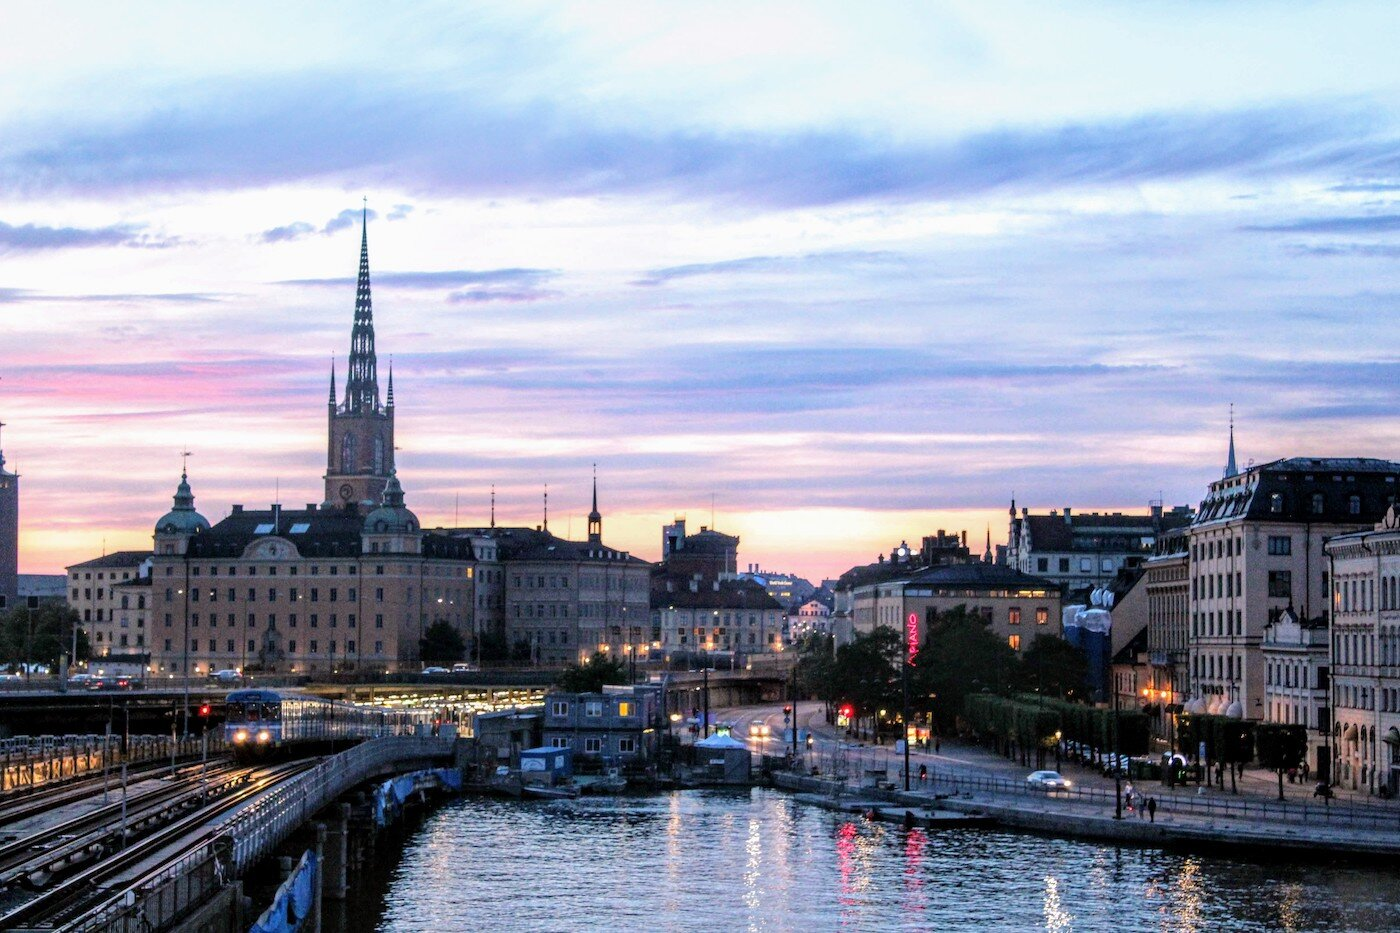 The view toward Gamla Stan at sunset